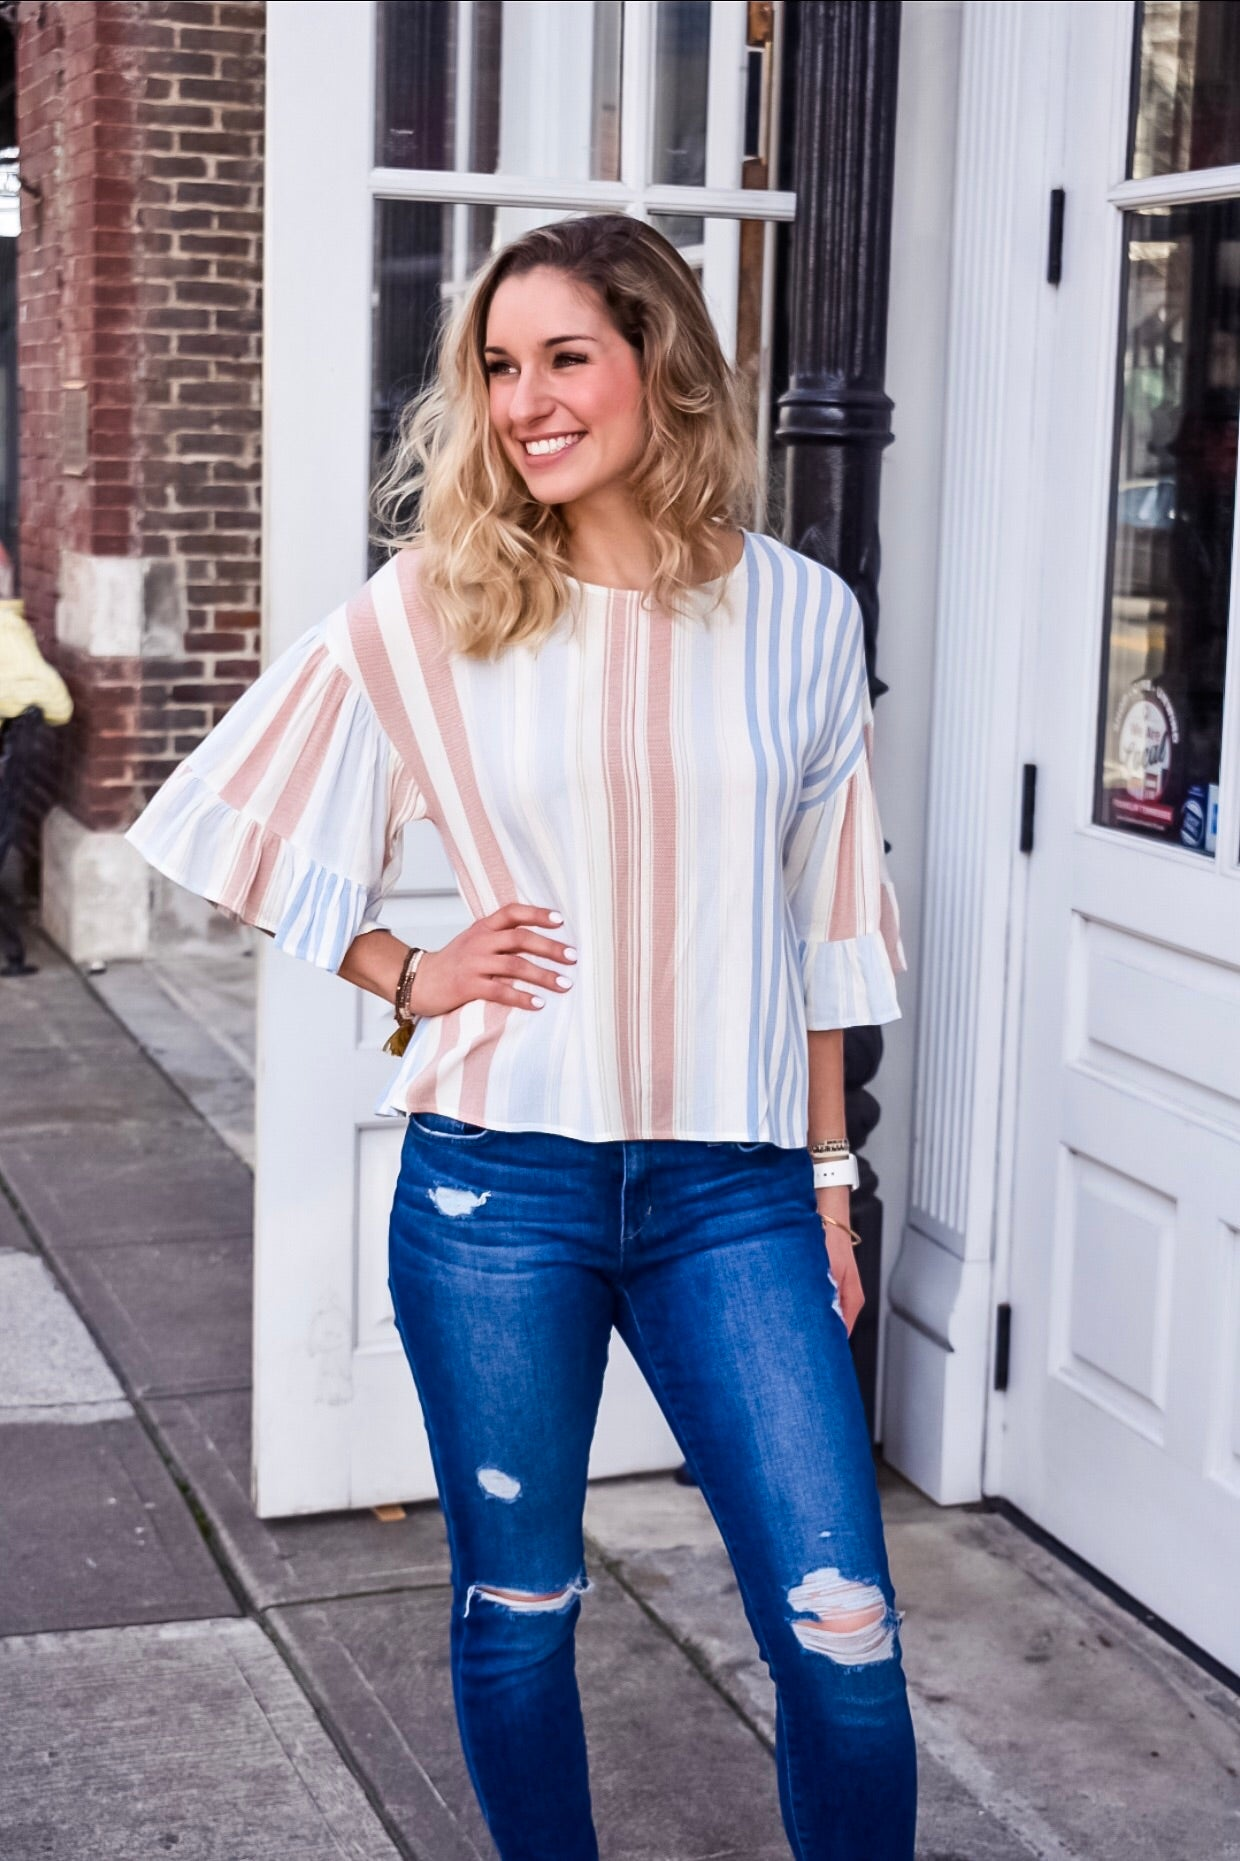 Cotton Candy Blouse